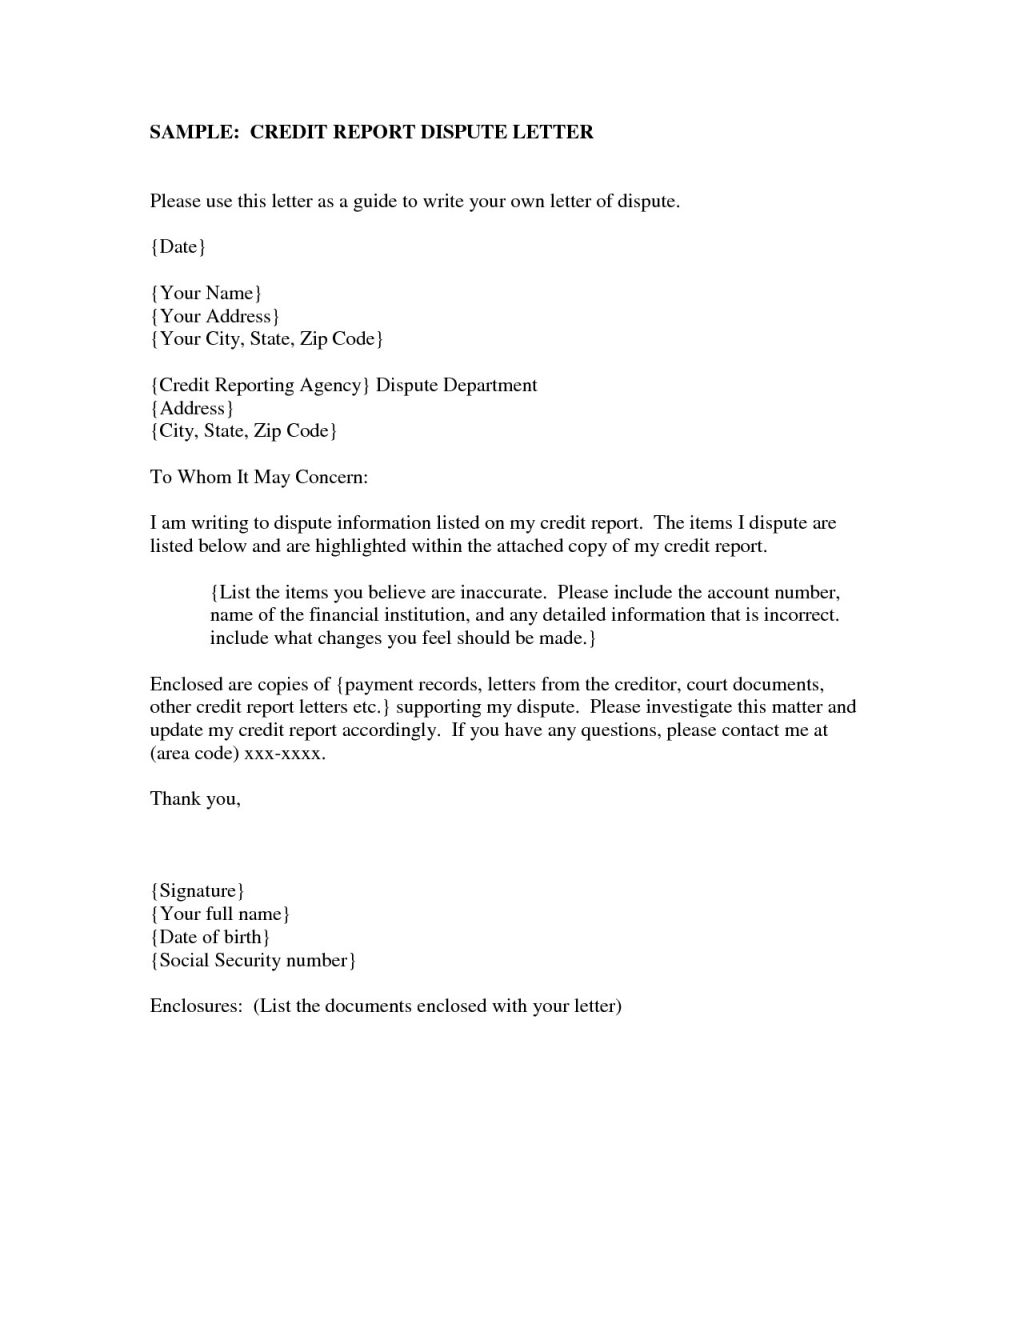 Template for Credit Report Dispute Letter - Well Known Sample Dispute Letter to Credit Bureau Kb33